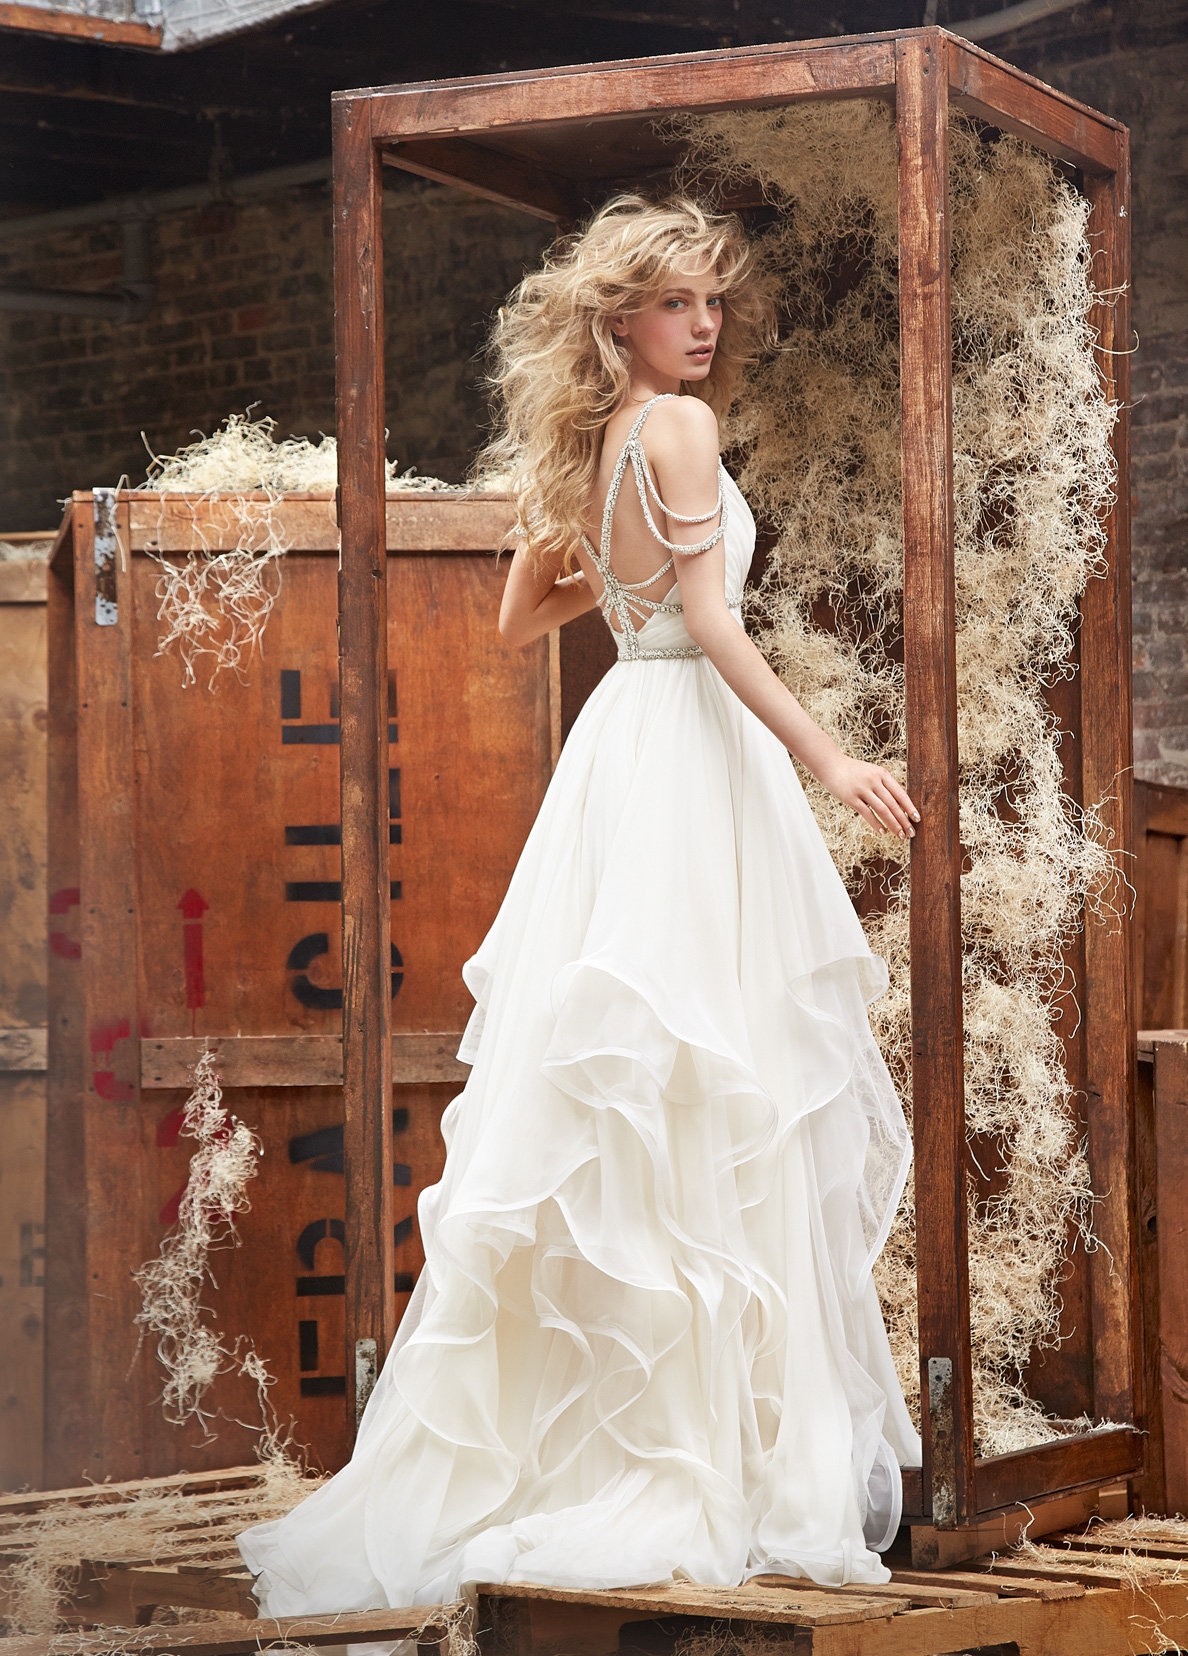 Bridal gowns and wedding dresses by jlm couture style 6450 style 6450 ad shot jlm pinterest icon ombrellifo Choice Image